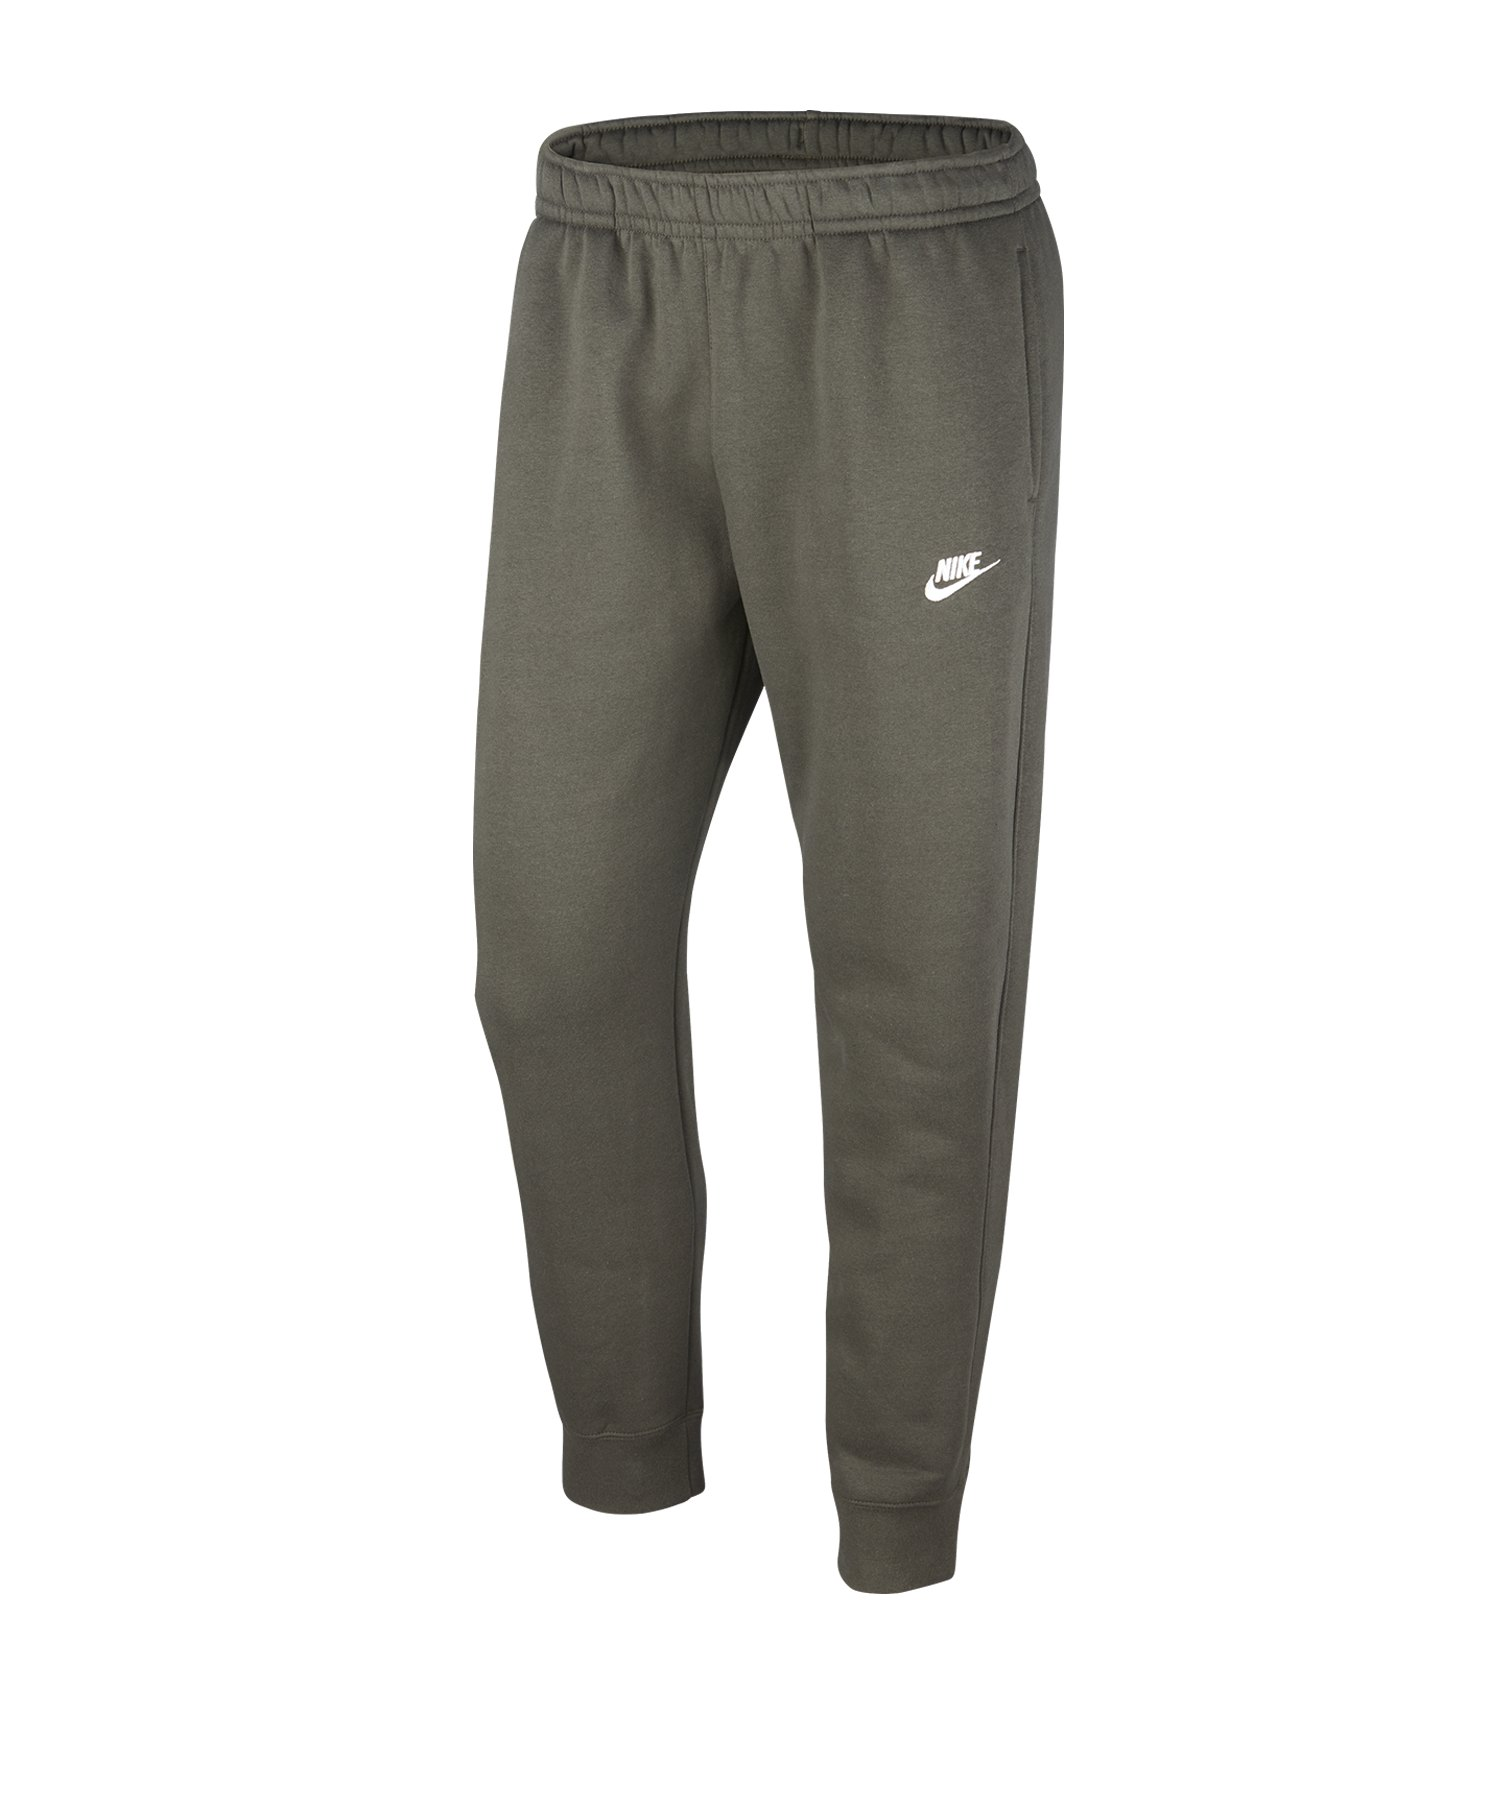 Nike Club Fleece Jogger Pants Hose Grün F355 - gruen